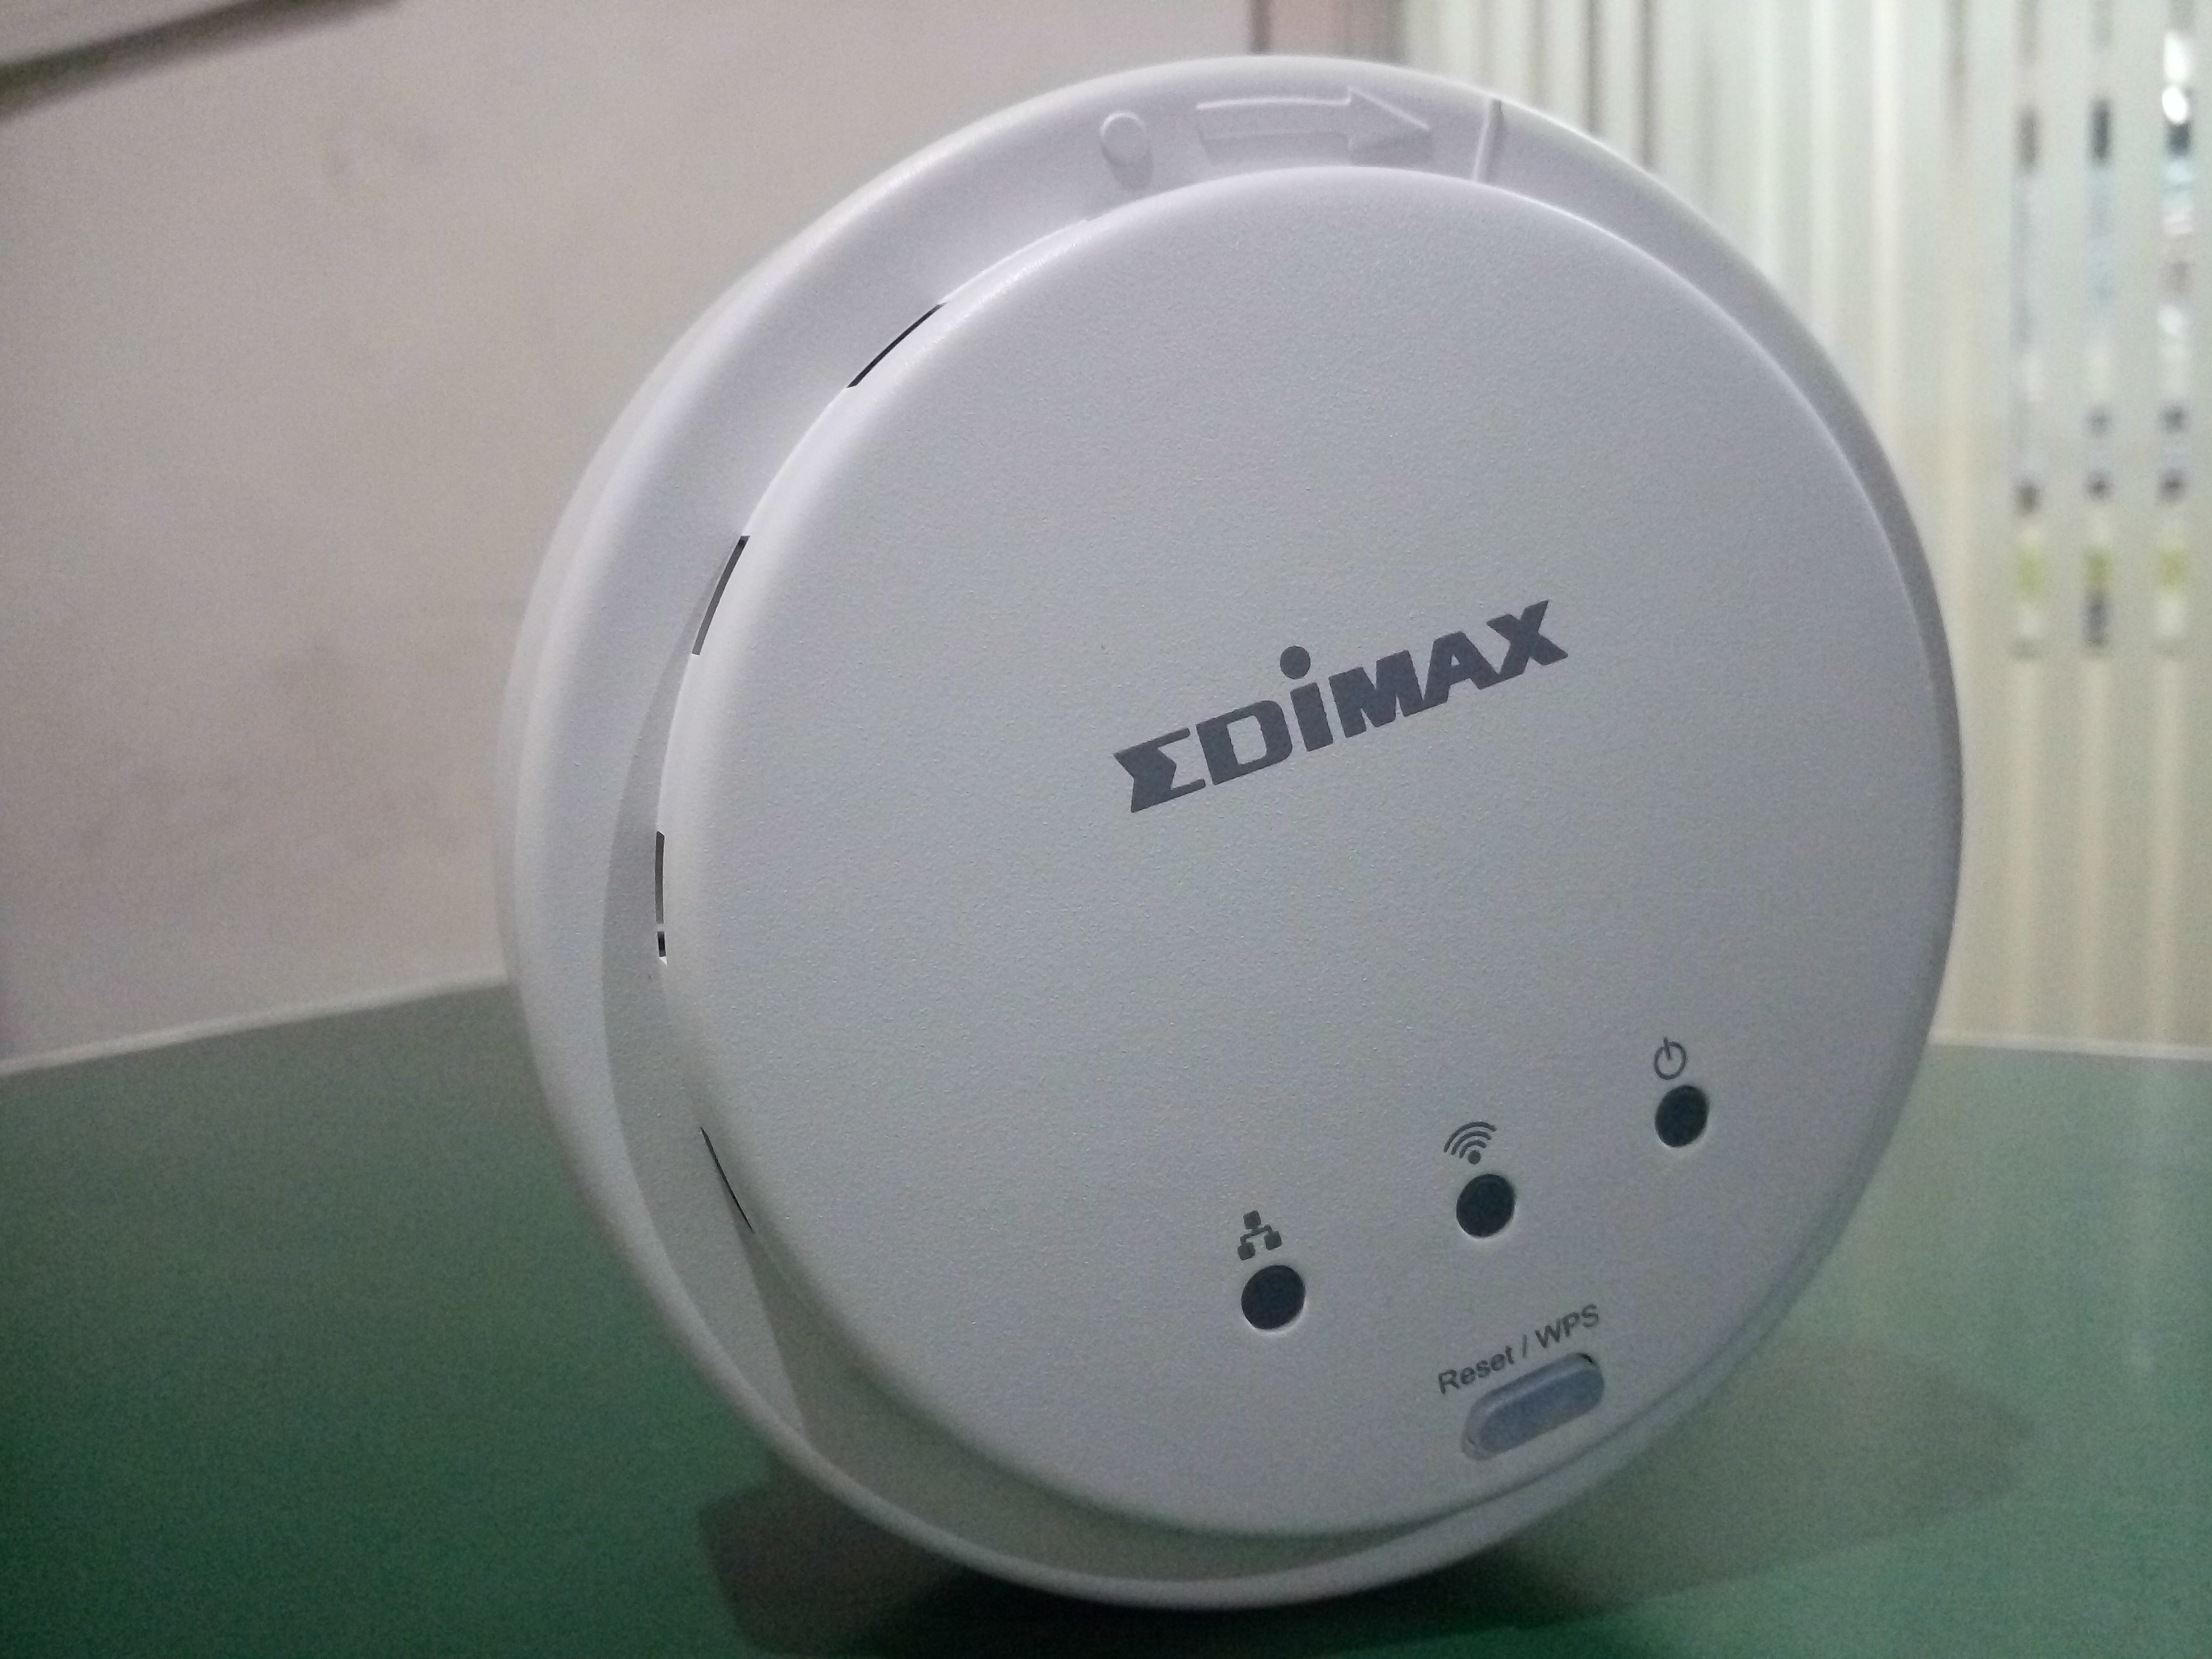 ACCESS POINT used for Hotel,  ACCESS POINT used for coffee shop ACCESS POINT used for restaurant ACCESS POINT used for office,  ACCESS POINT used for lobby ACCESS POINT used for meeting room.